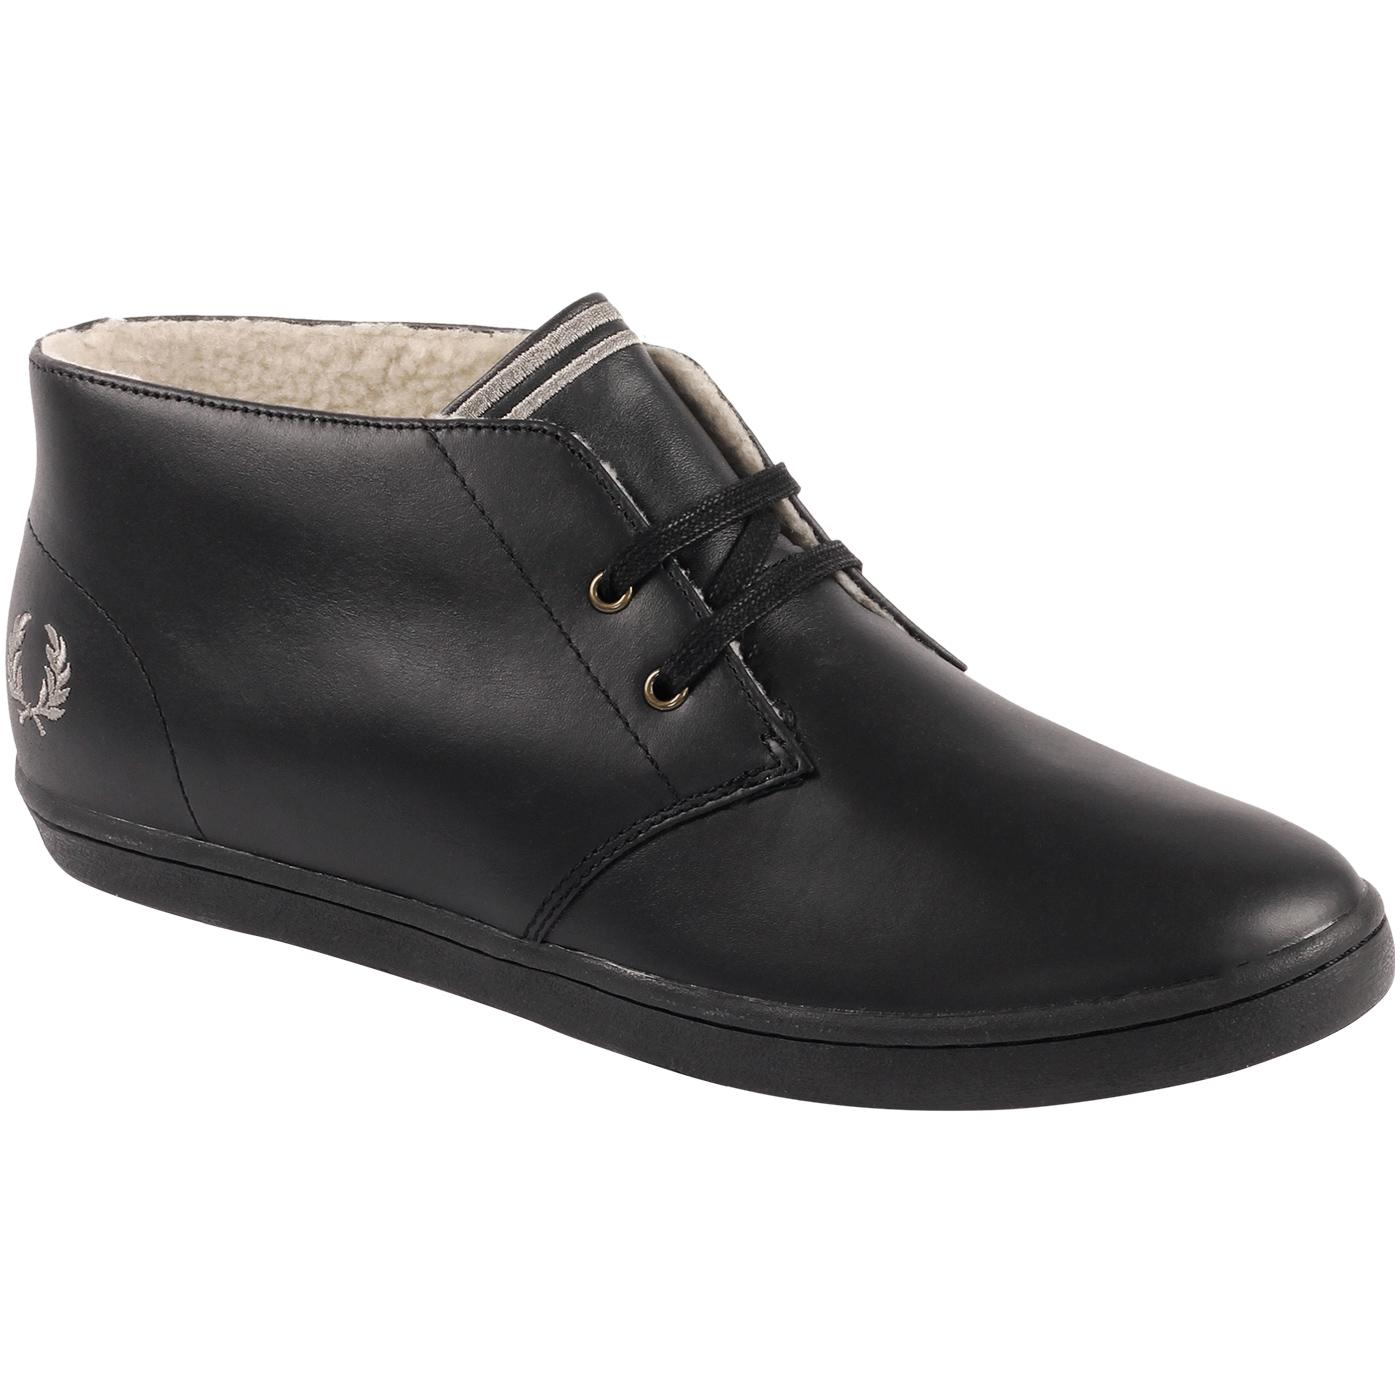 Byron FRED PERRY Mid Leather Ankle Boots In Black